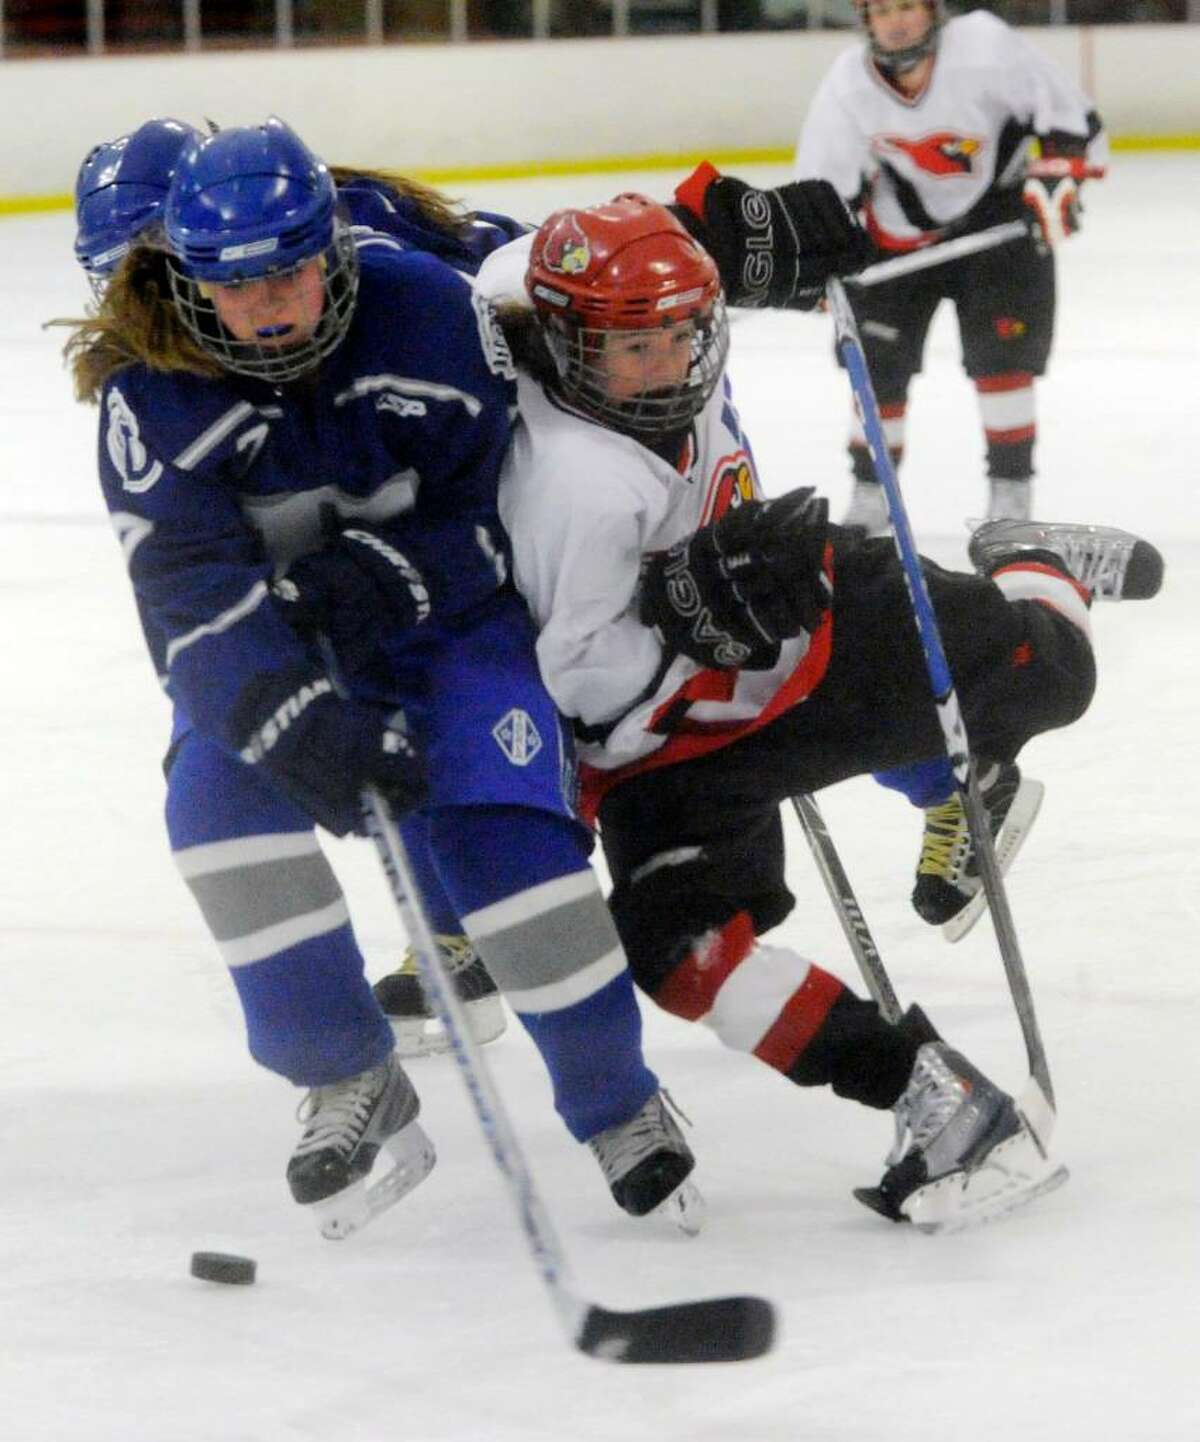 Darien's Lily Christensen battles with Greenwich's Hannah Jeffrey as Darien hosts Greenwich High in a girls hockey game at the Darien Ice Rink Wednesday evening, Feb. 24, 2010.